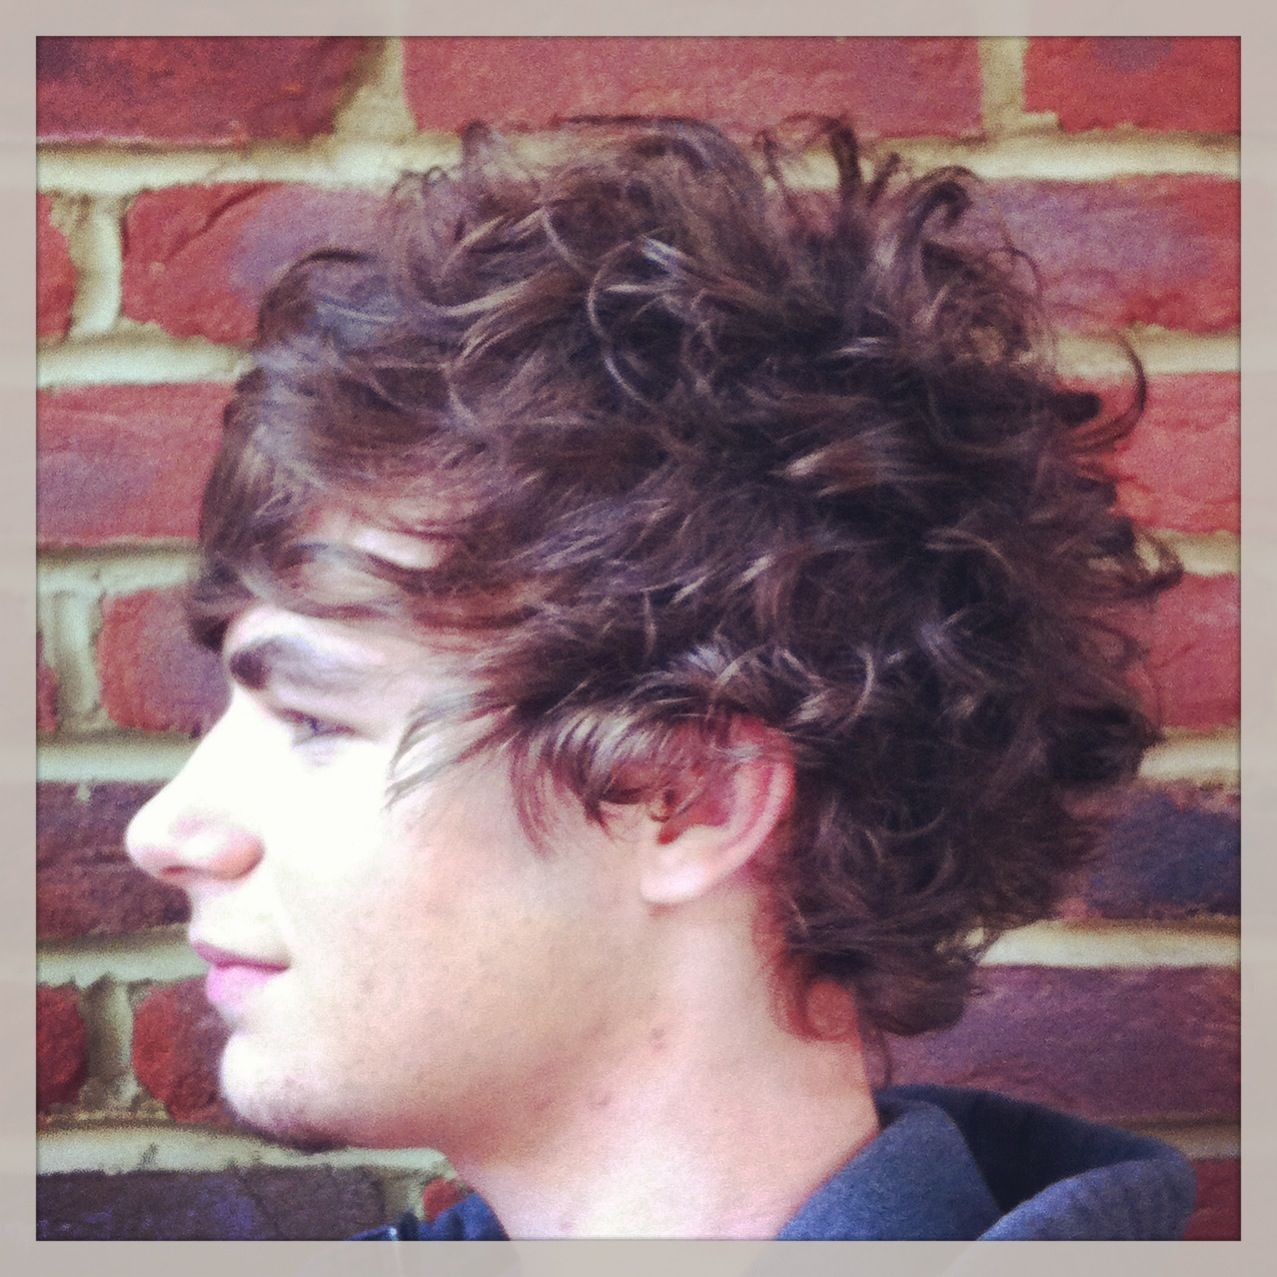 Gents haircut. Enhancing natural curls. Soft texture through out. Short internal layers for ...